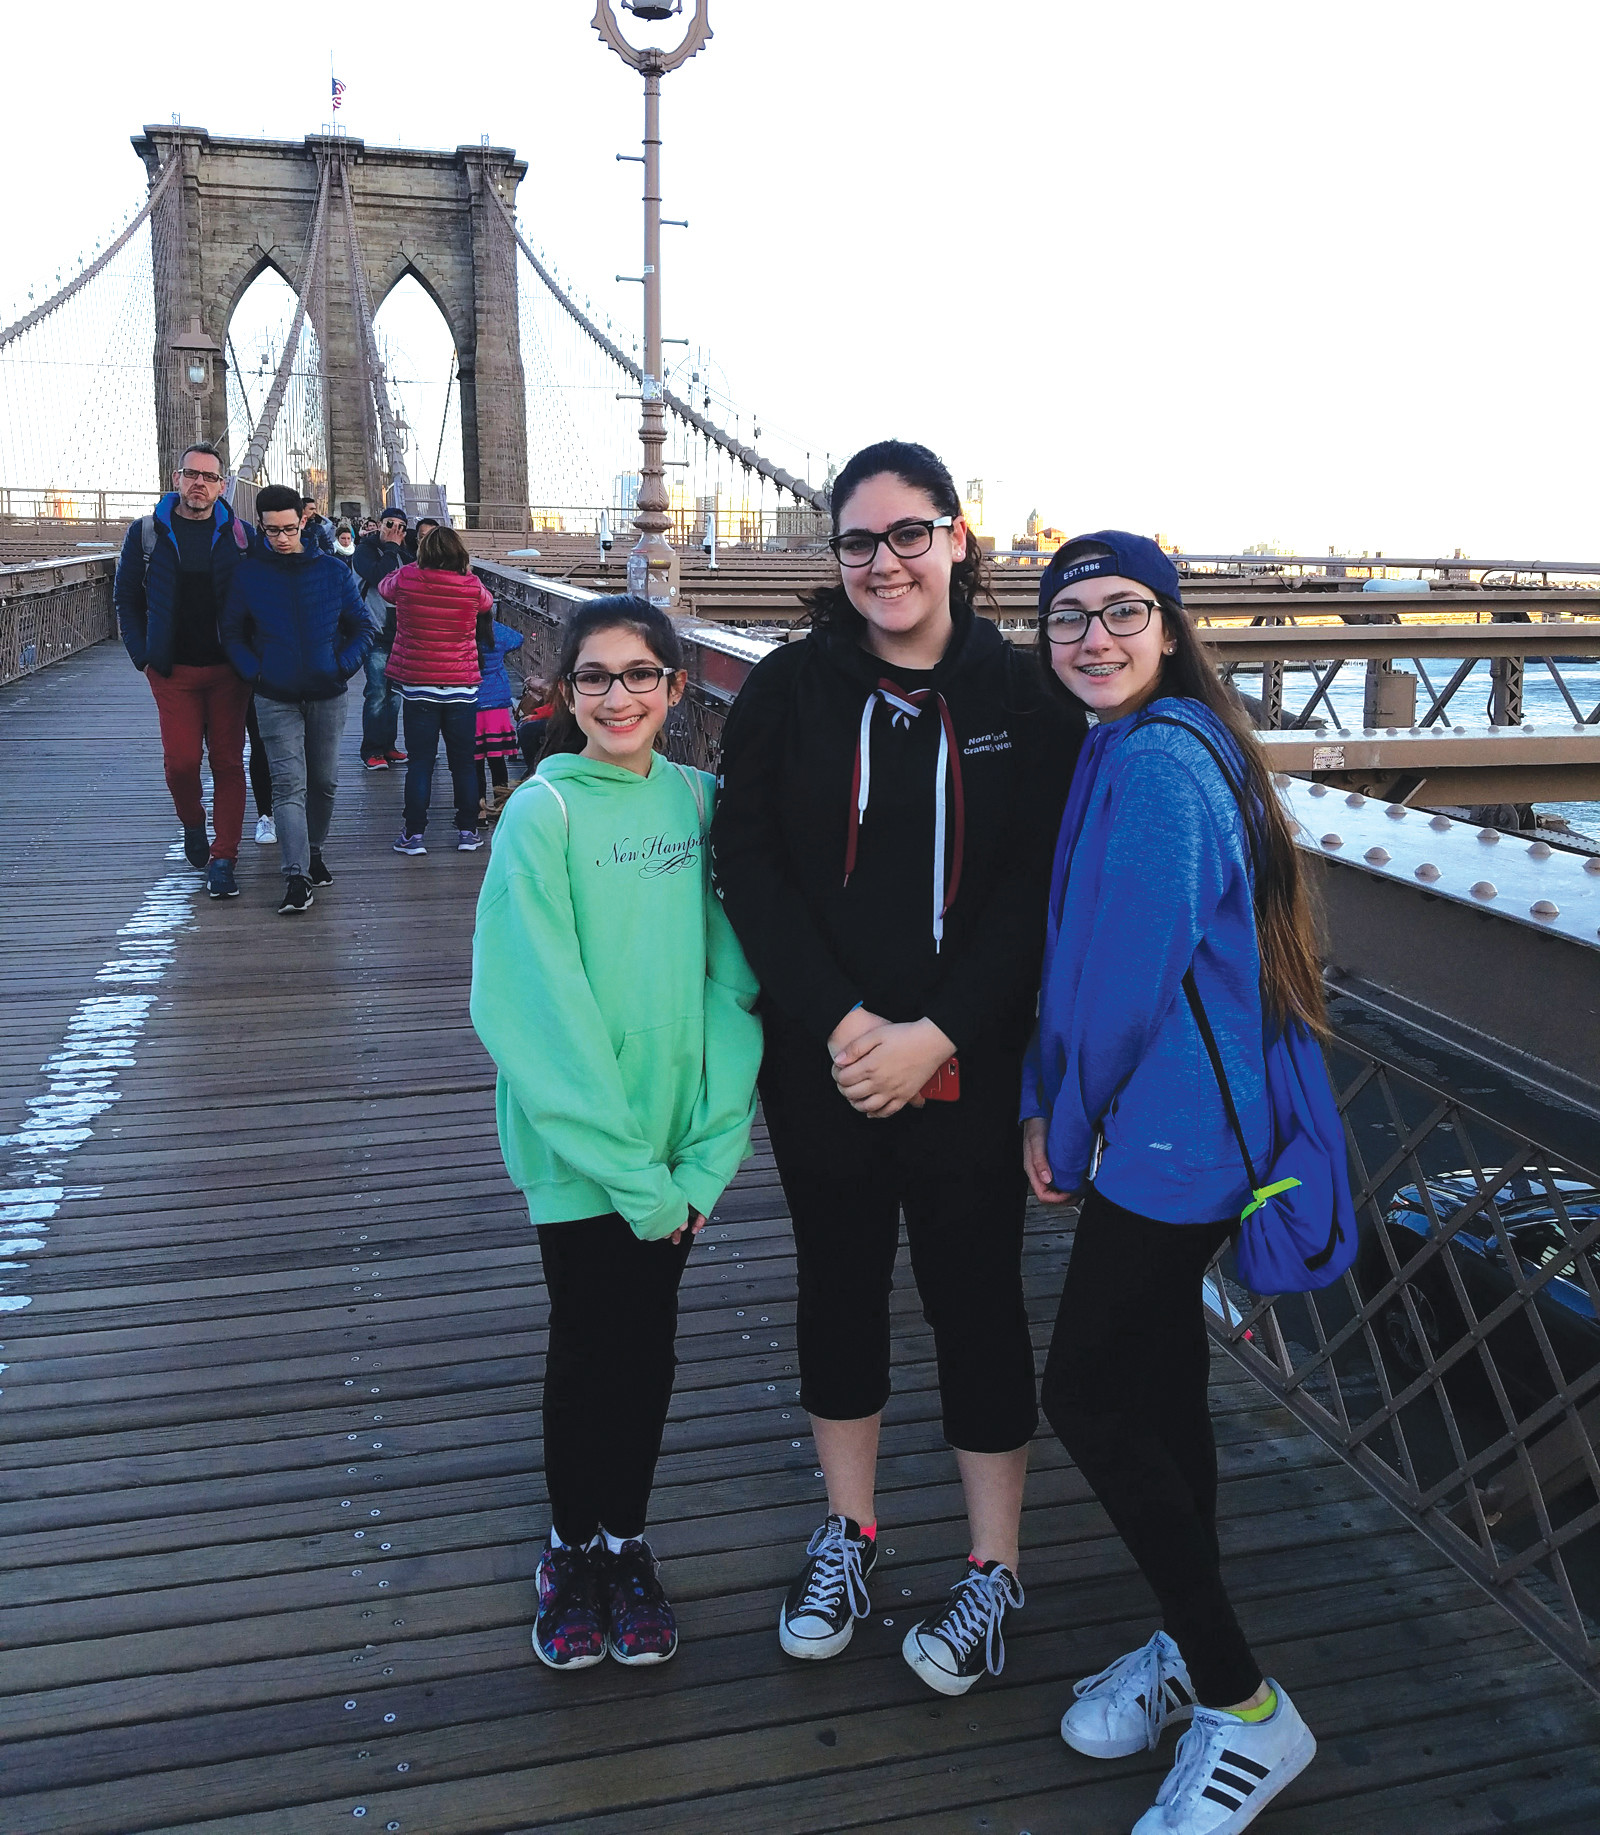 CHECKING IT OFF THE BUCKET LIST: Walking the Brooklyn Bridge at sunset was something we will always remember doing and was a highlight of the trip. It was one of the free things I had found when I researched free things to do in New York City.